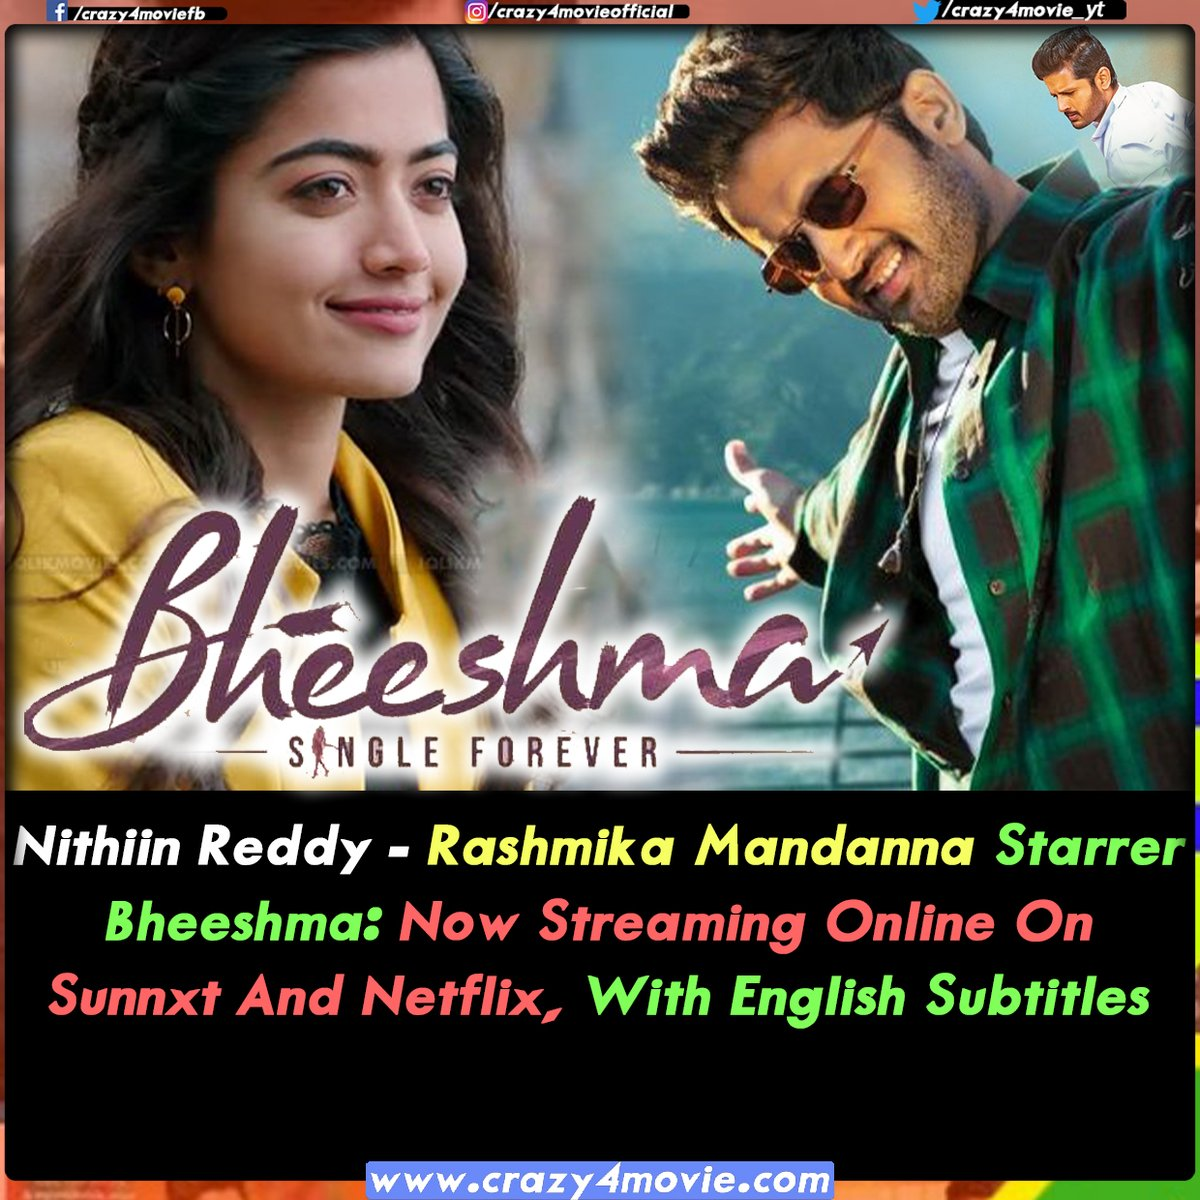 Crazy 4 Movie On Twitter Bheeshma Nithin Rashmikamandanna Telugumovie Movieupdates Sunnxt Netflix Nowstreaming